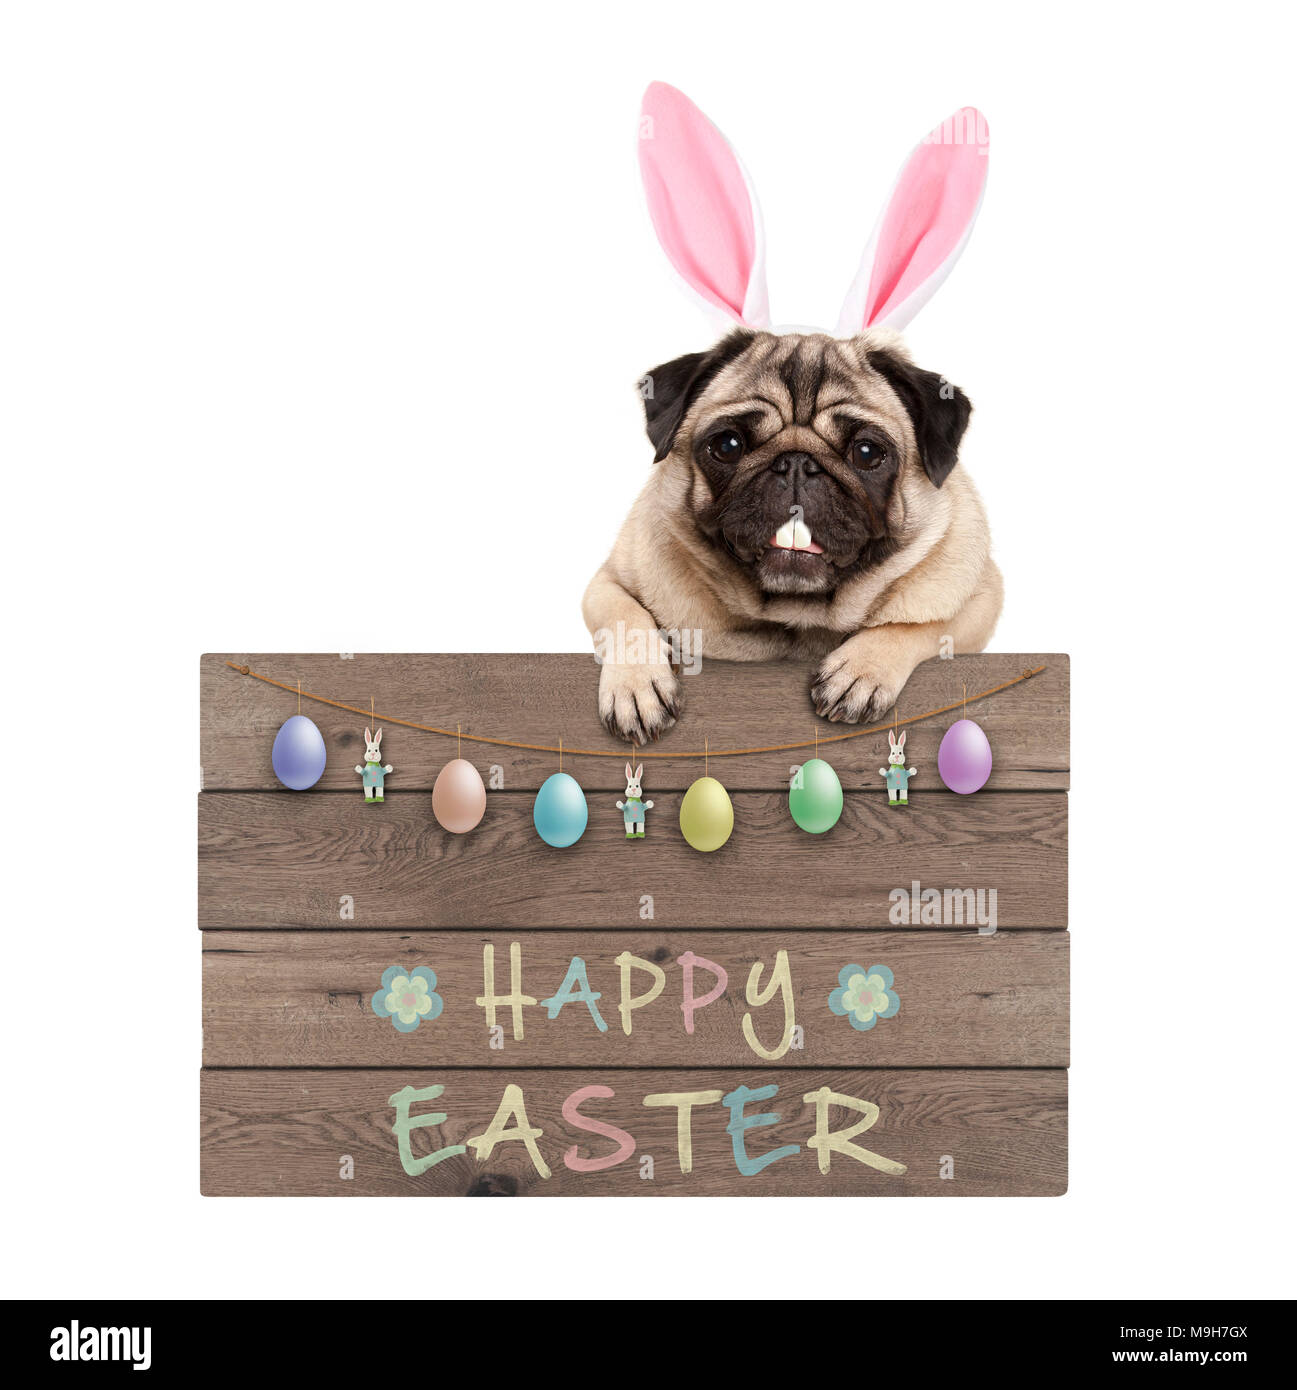 Easter bunny pug dog hanging on wooden sign with text happy easter and pastel decoration, isolated on white background - Stock Image